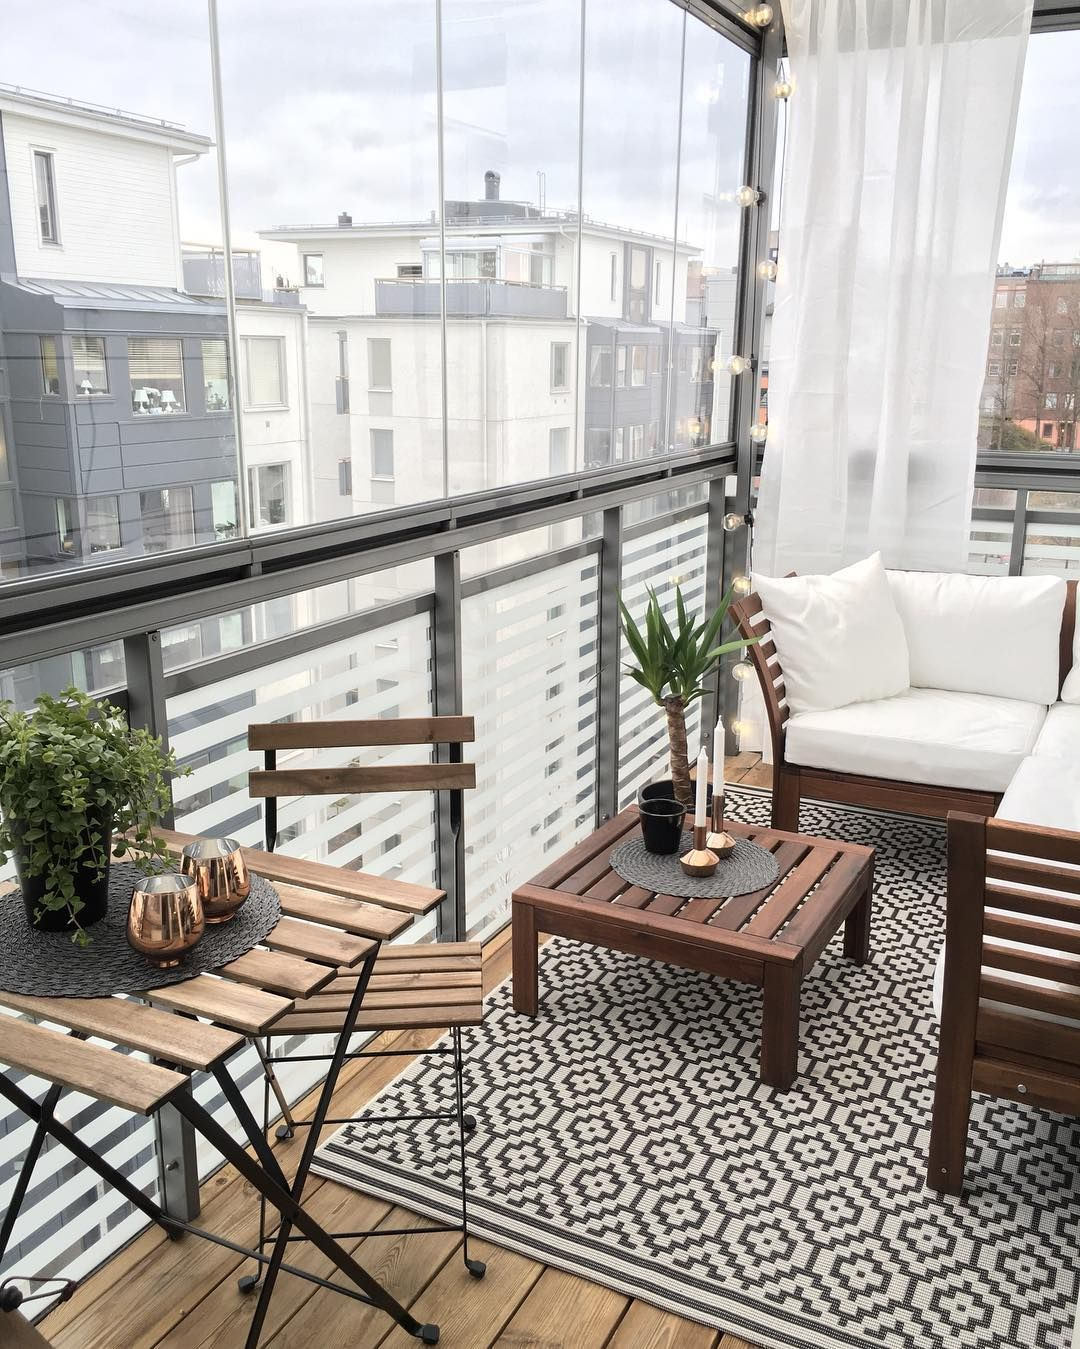 Just showing an outdoor rug on a balcony (not this particular rug, per se)  Beautiful and cozy apartment balcony decor ideas